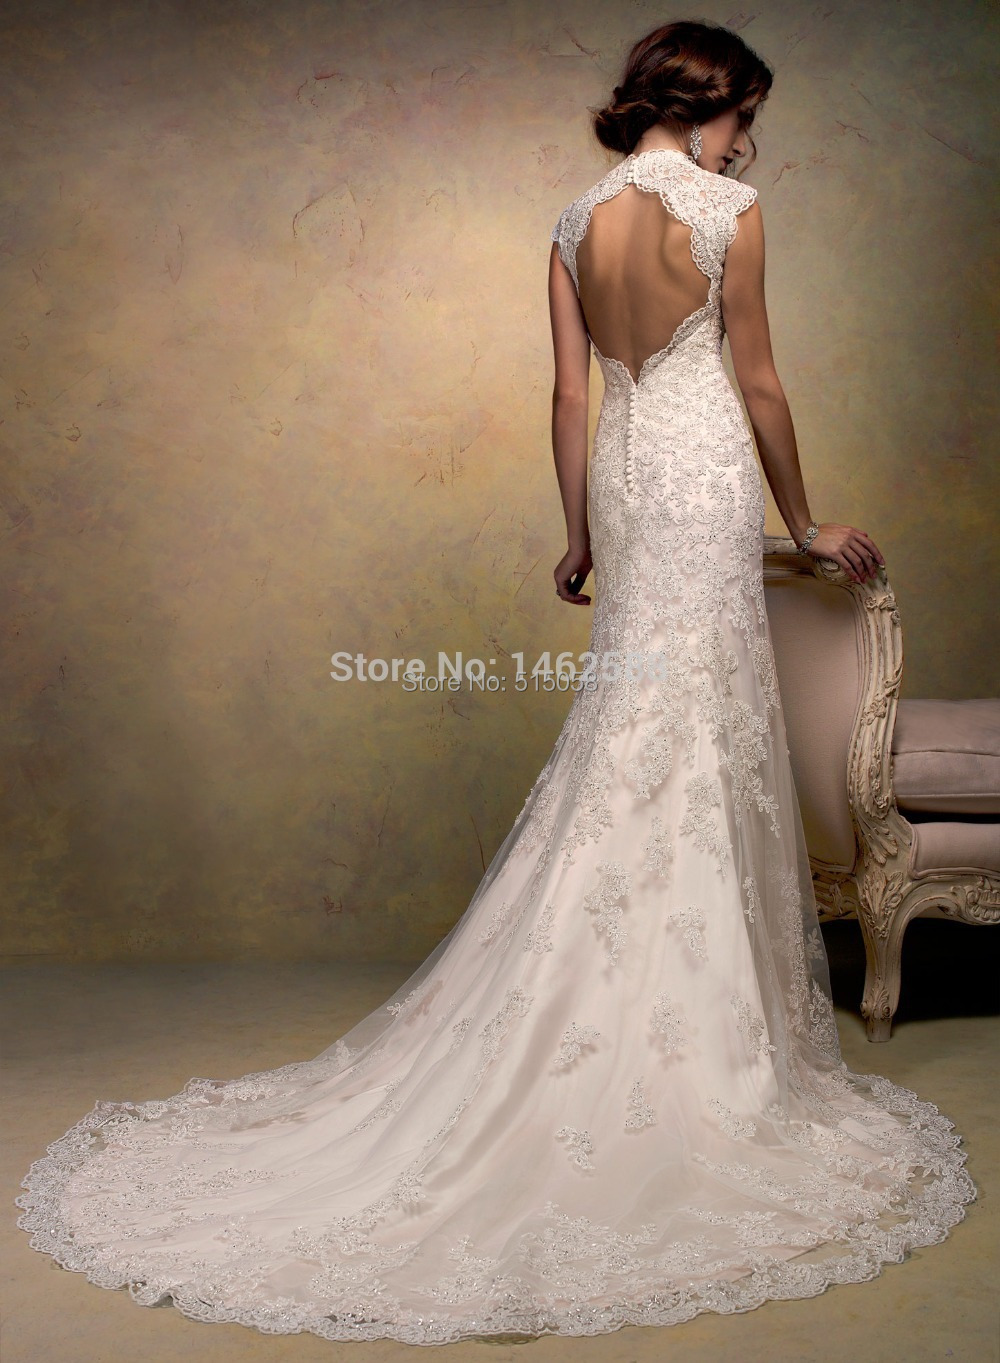 Aliexpress.com : Buy Cap Sleeves Open Back Lace Wedding Dress ...